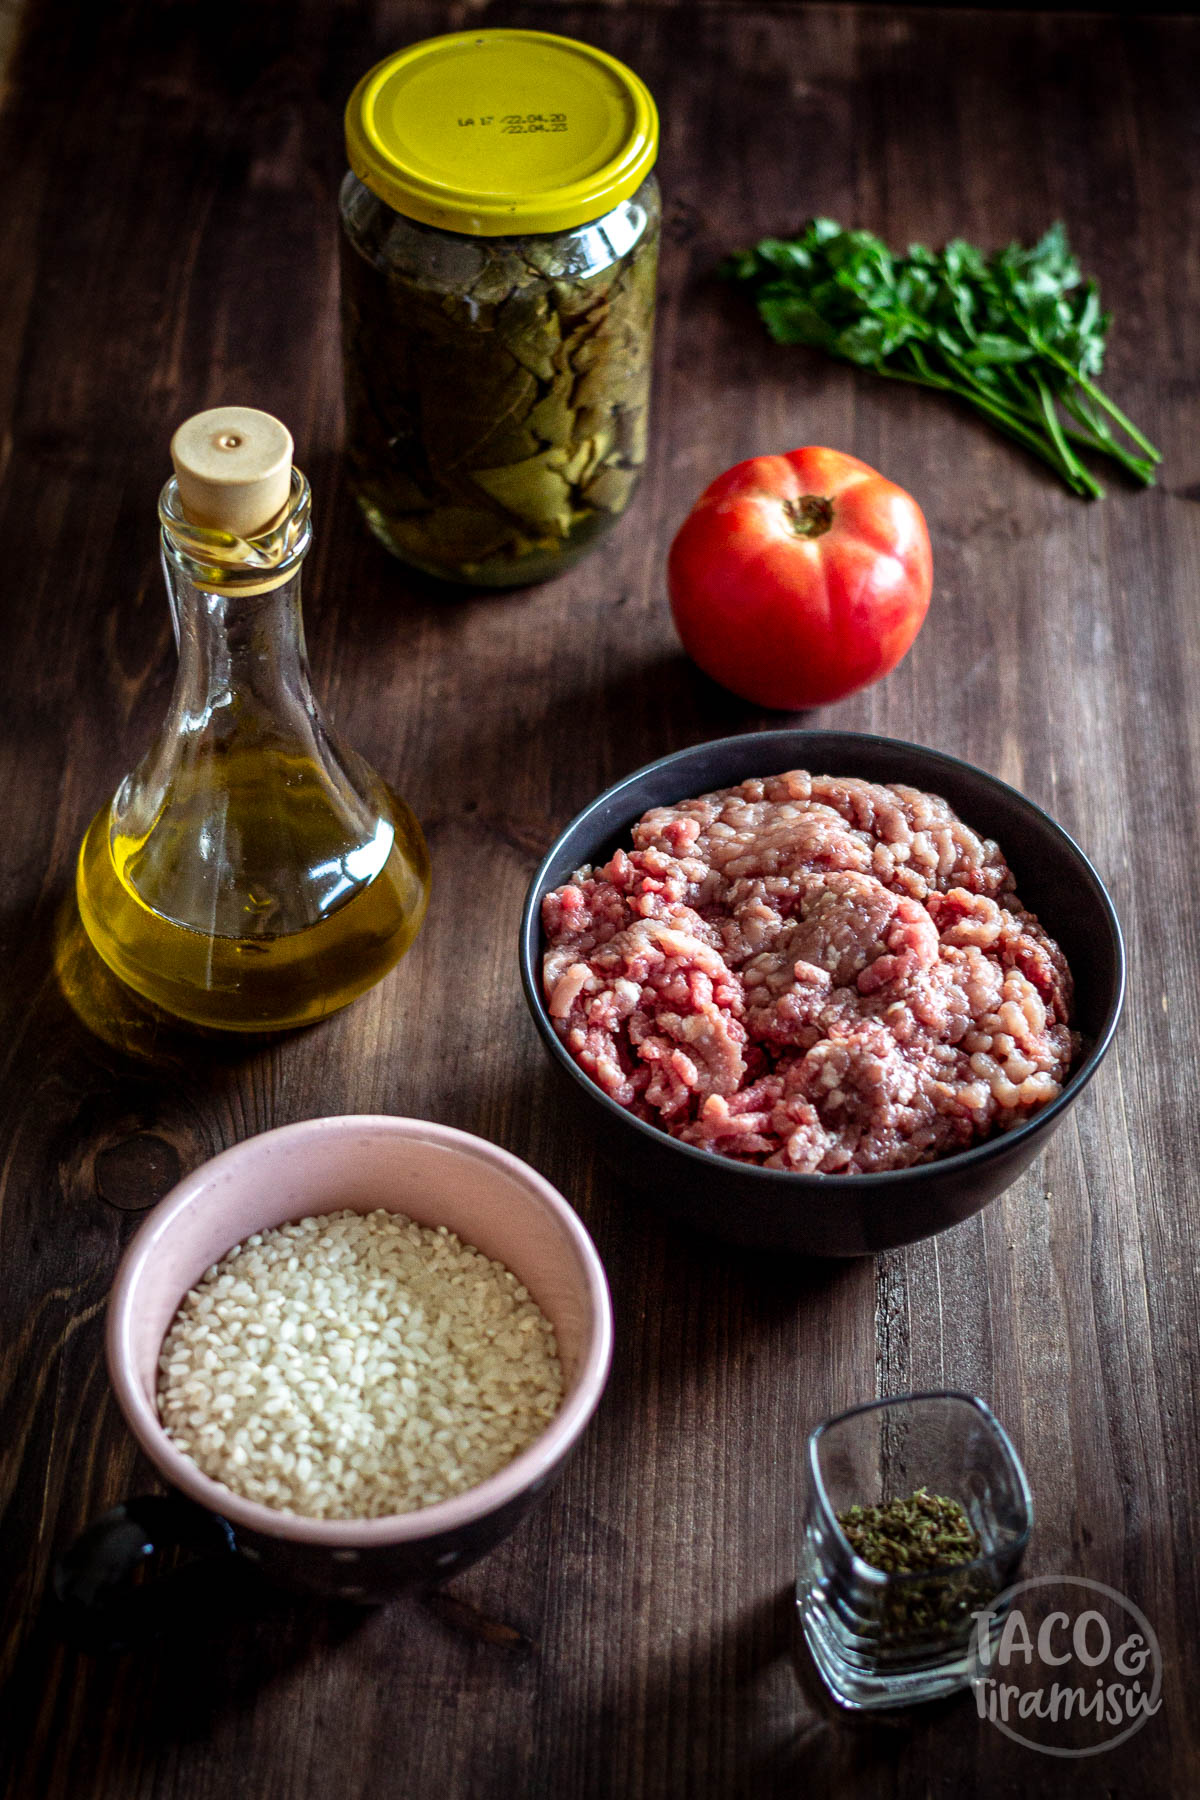 ingredients for stuffed grape leaves